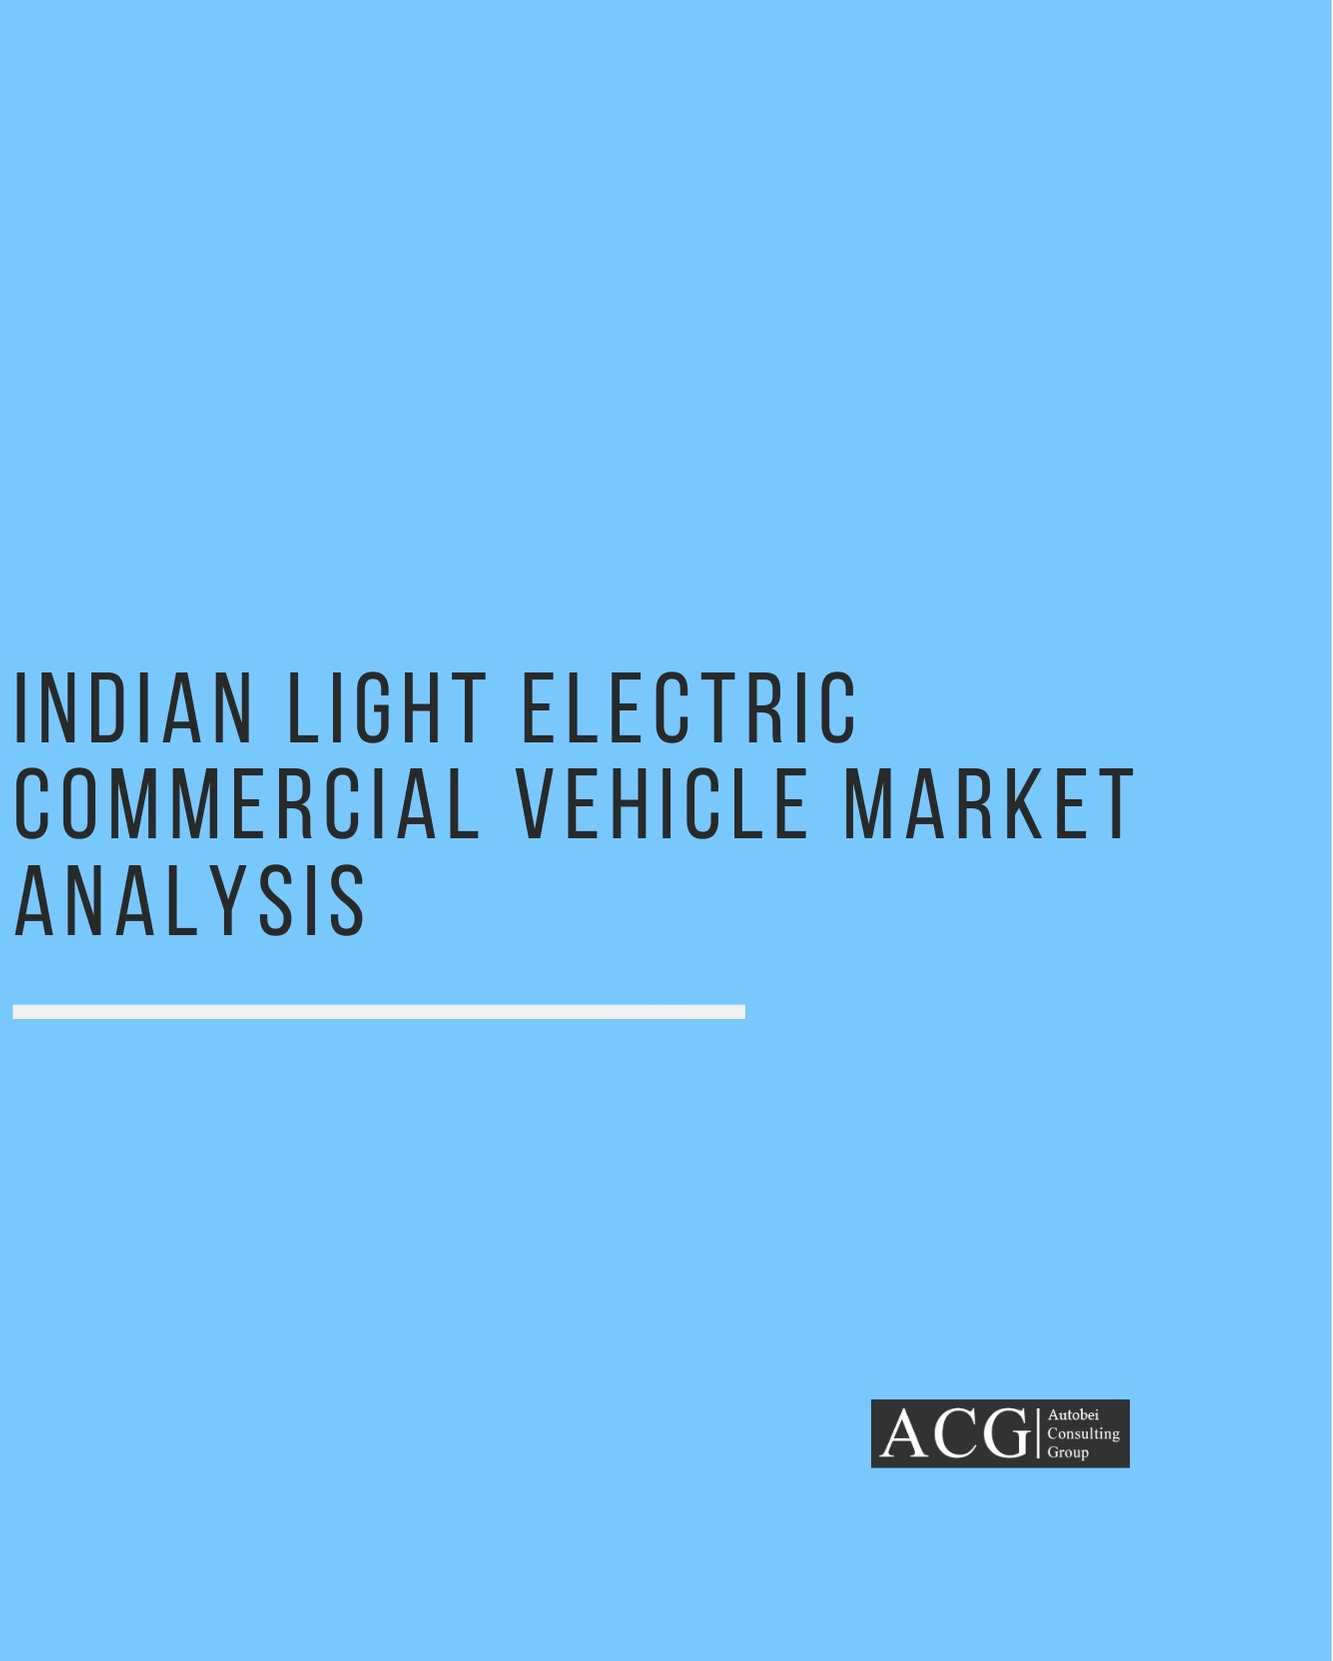 Indian Light Electric Commercial Vehicle Market Analysis